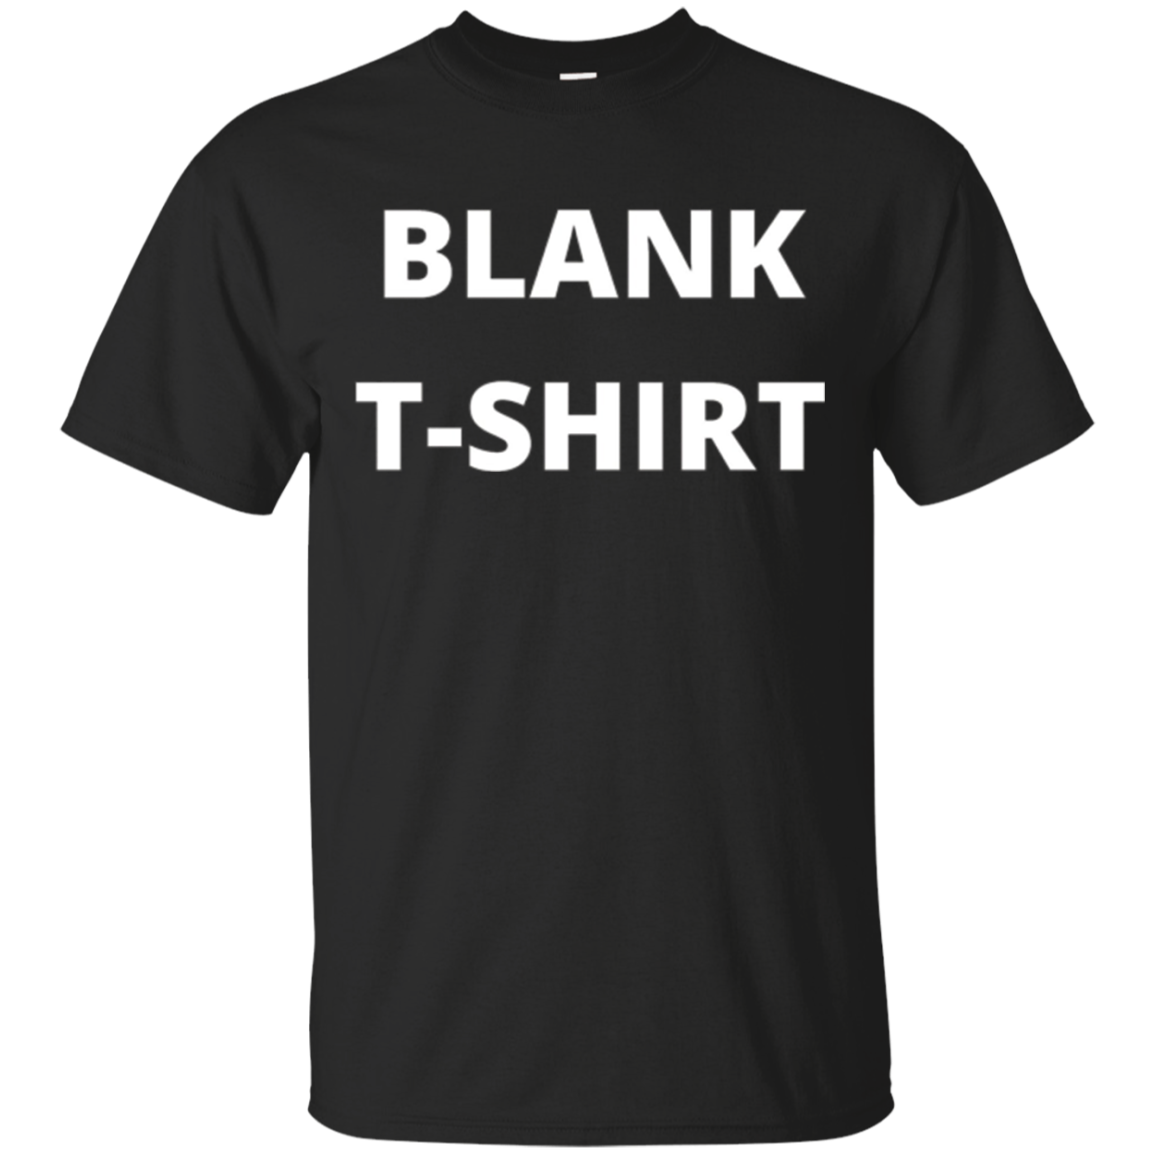 Cover Your Body With Amazing Blank T Shirt Funny Comedy Design